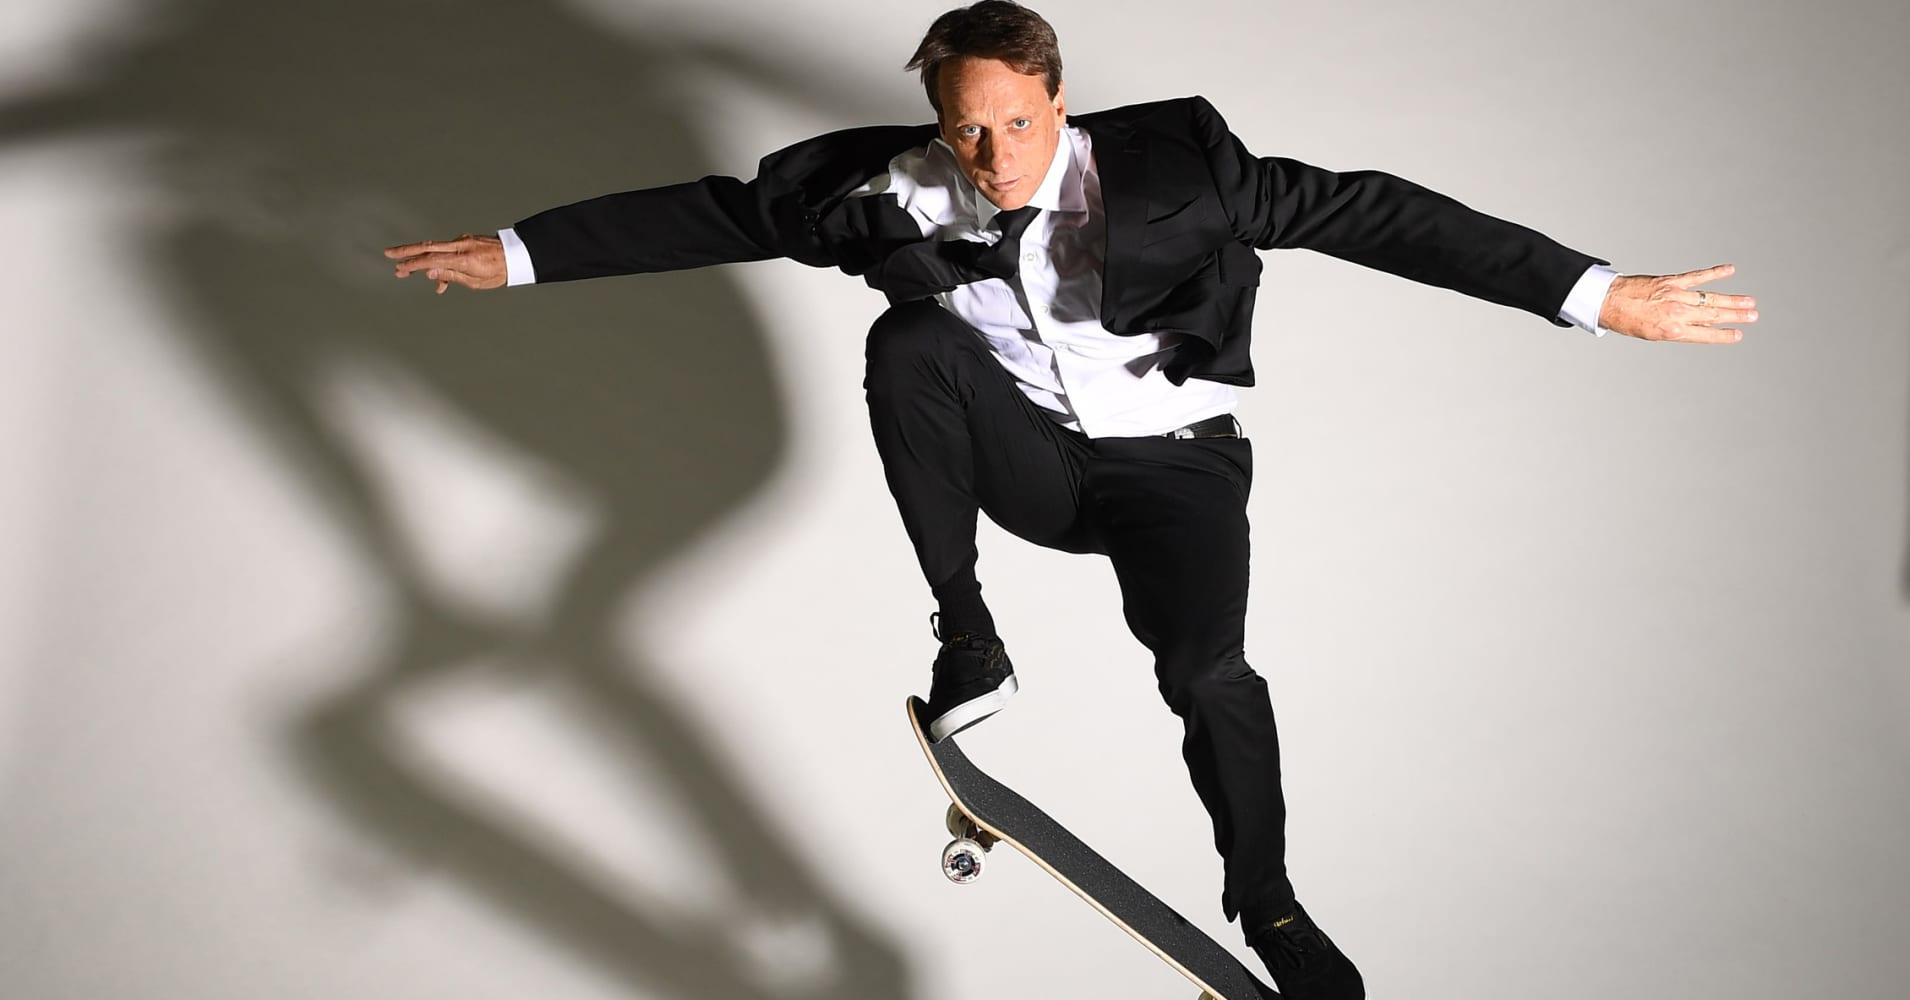 Tony Hawk: The skateboard legend on being a misfit and a mogul — and landing that 900-degree spin